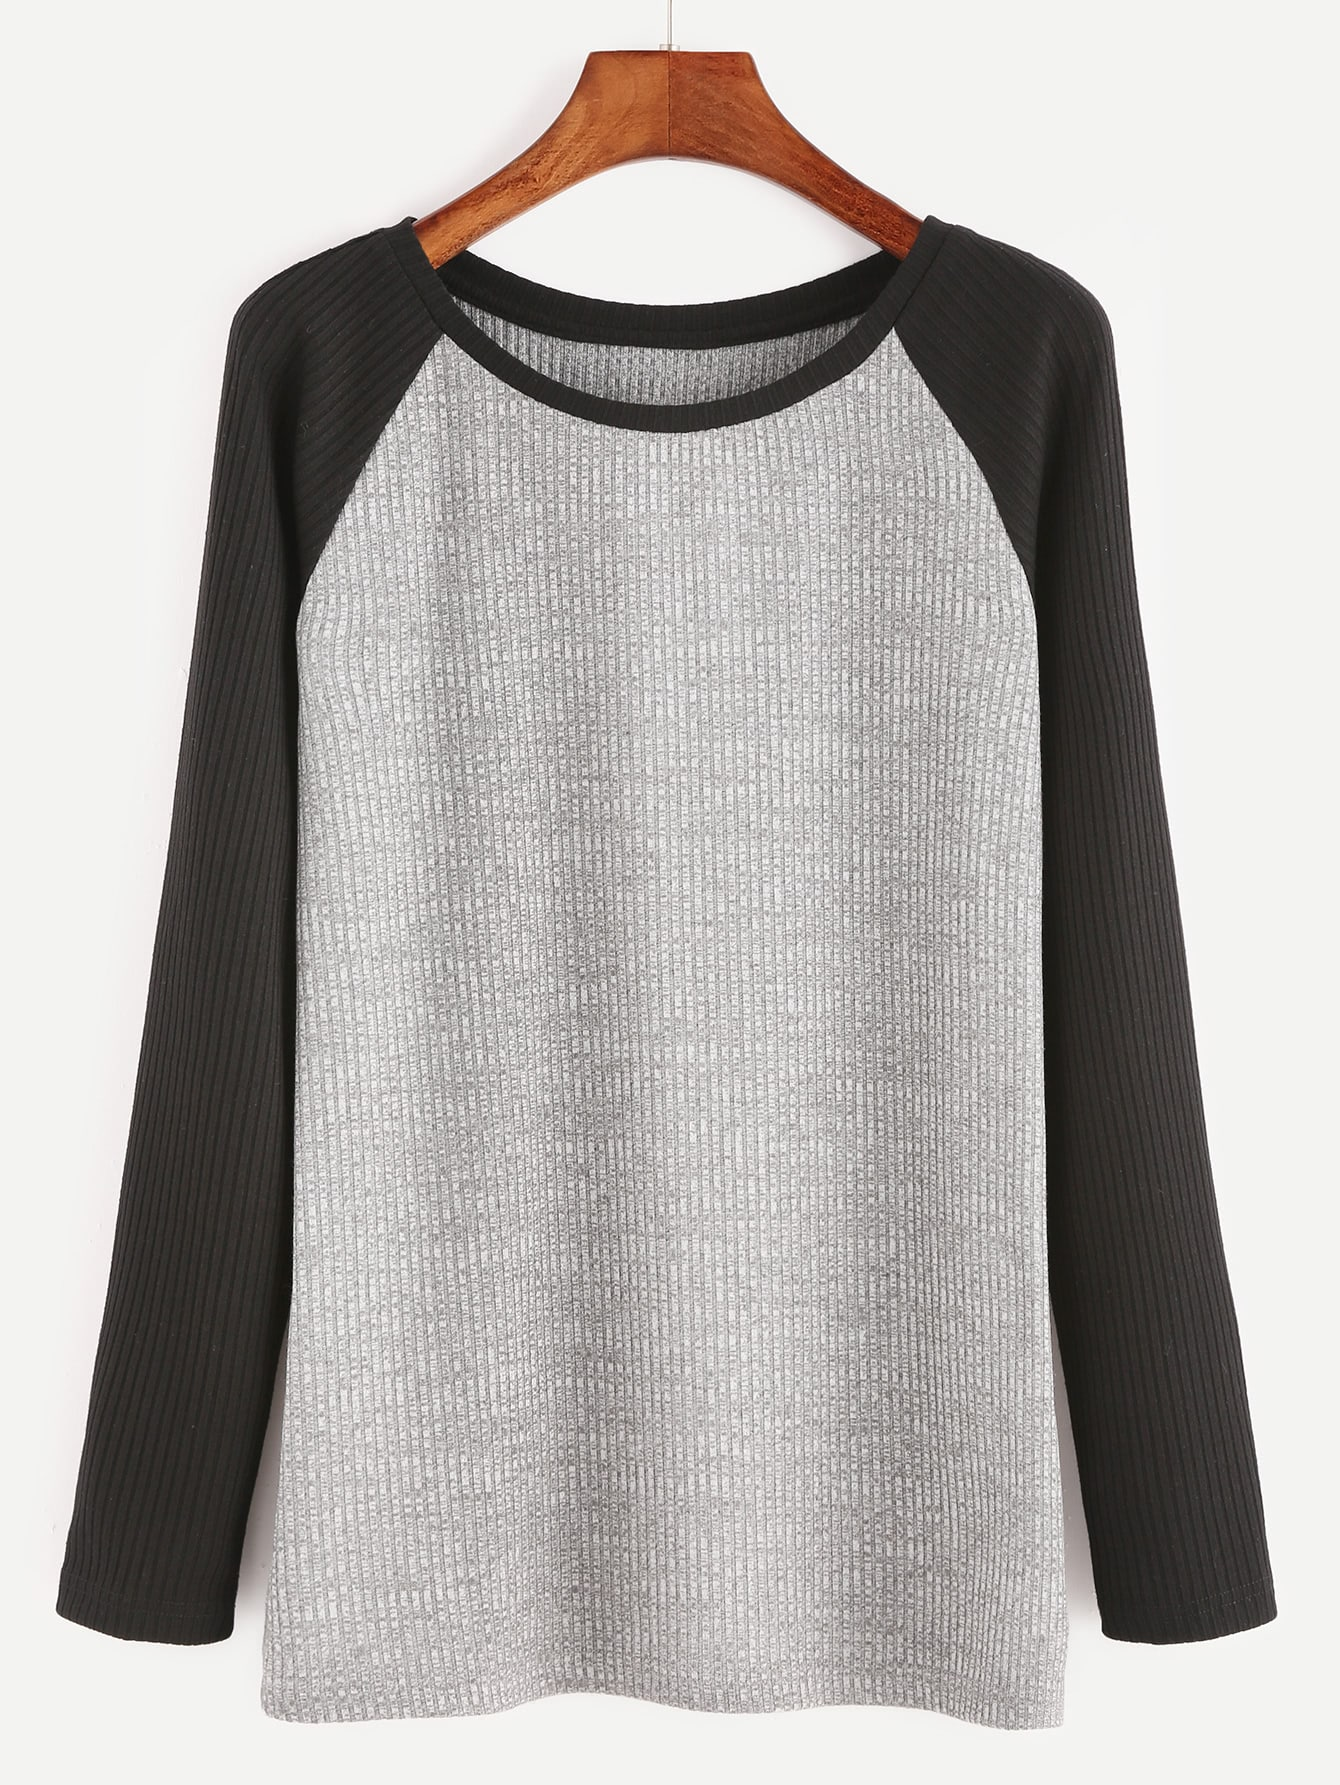 Heather Grey Contrast Raglan Sleeve Ribbed Knit T-shirt tee161111702